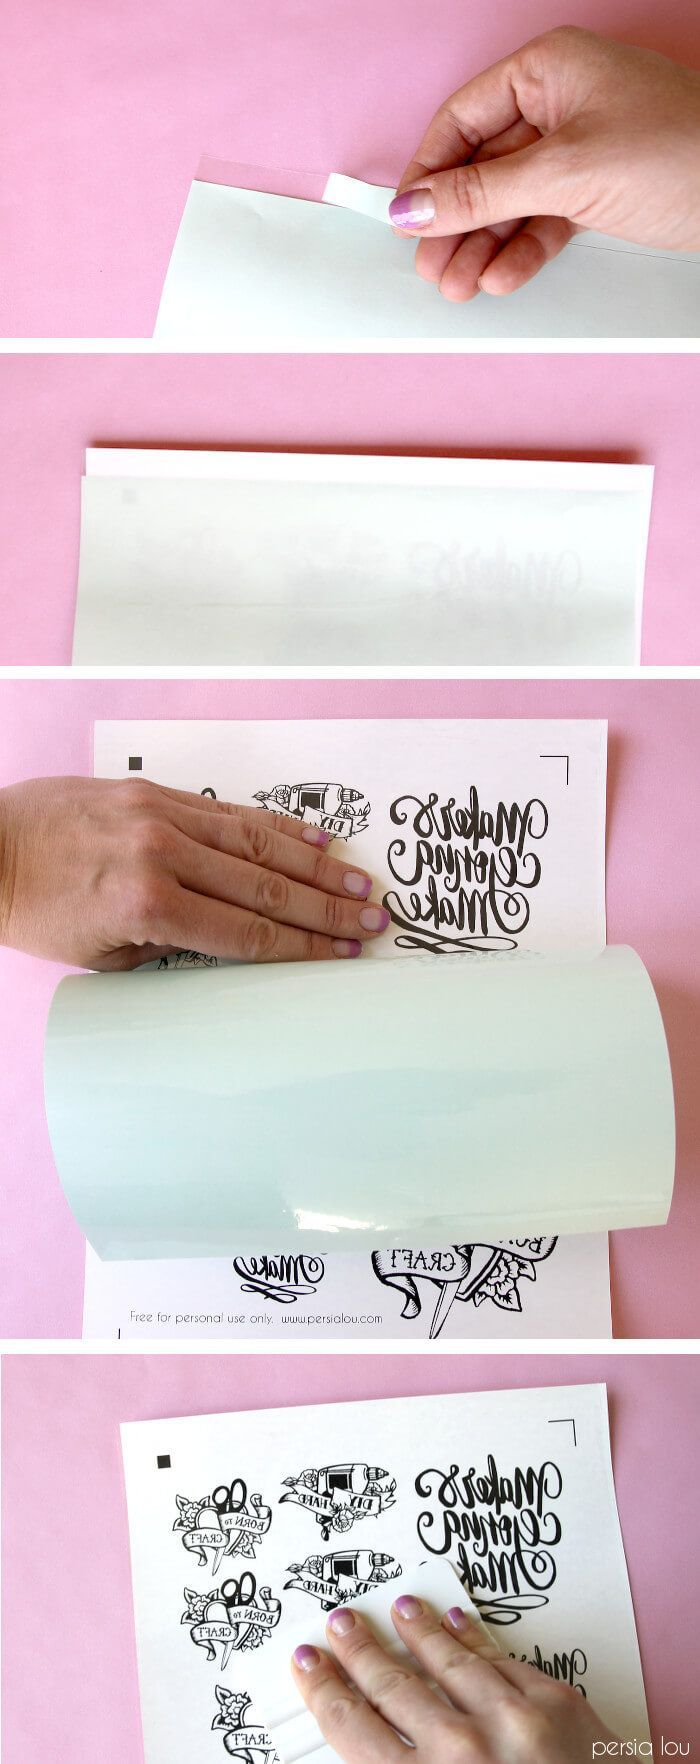 DIY Maker Tattoos - Persia Lou